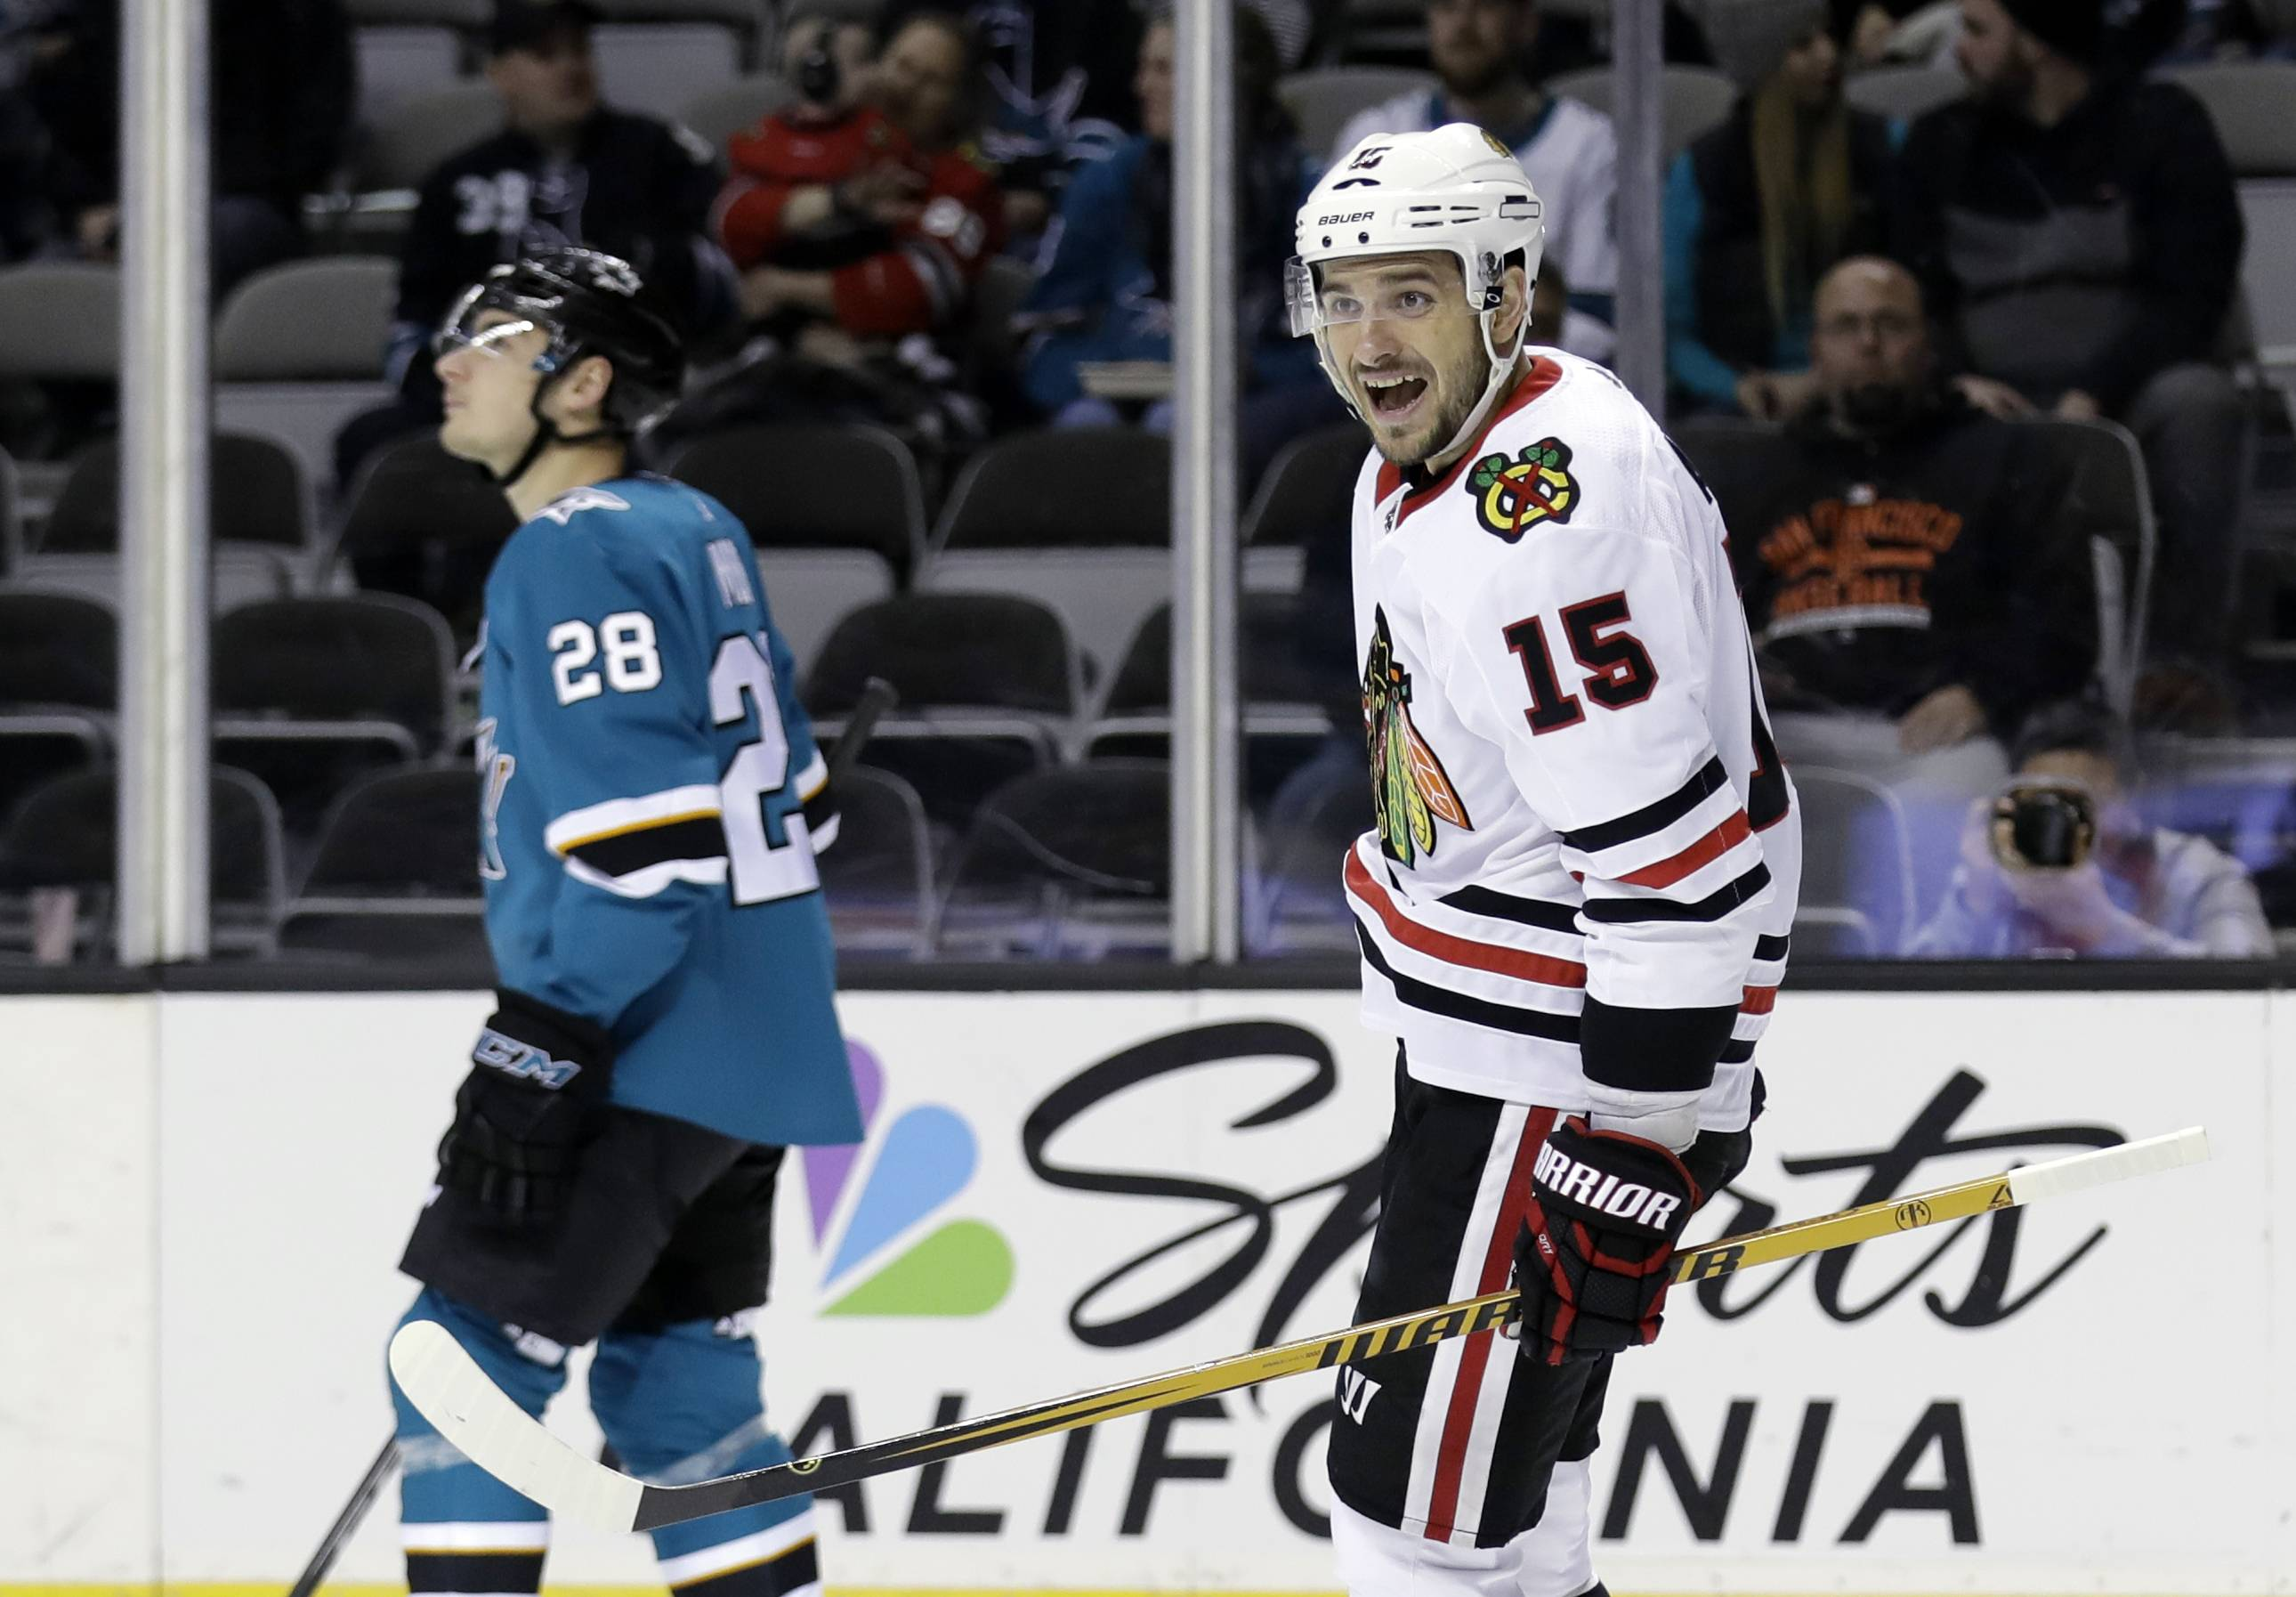 Some believe the Chicago Blackhawks should trade Artem Anisimov and his $4.55 million cap hit in the off-season. But getting rid of a player who is on the verge of setting a new career-high in goals scored wouldn't be the smartest move.